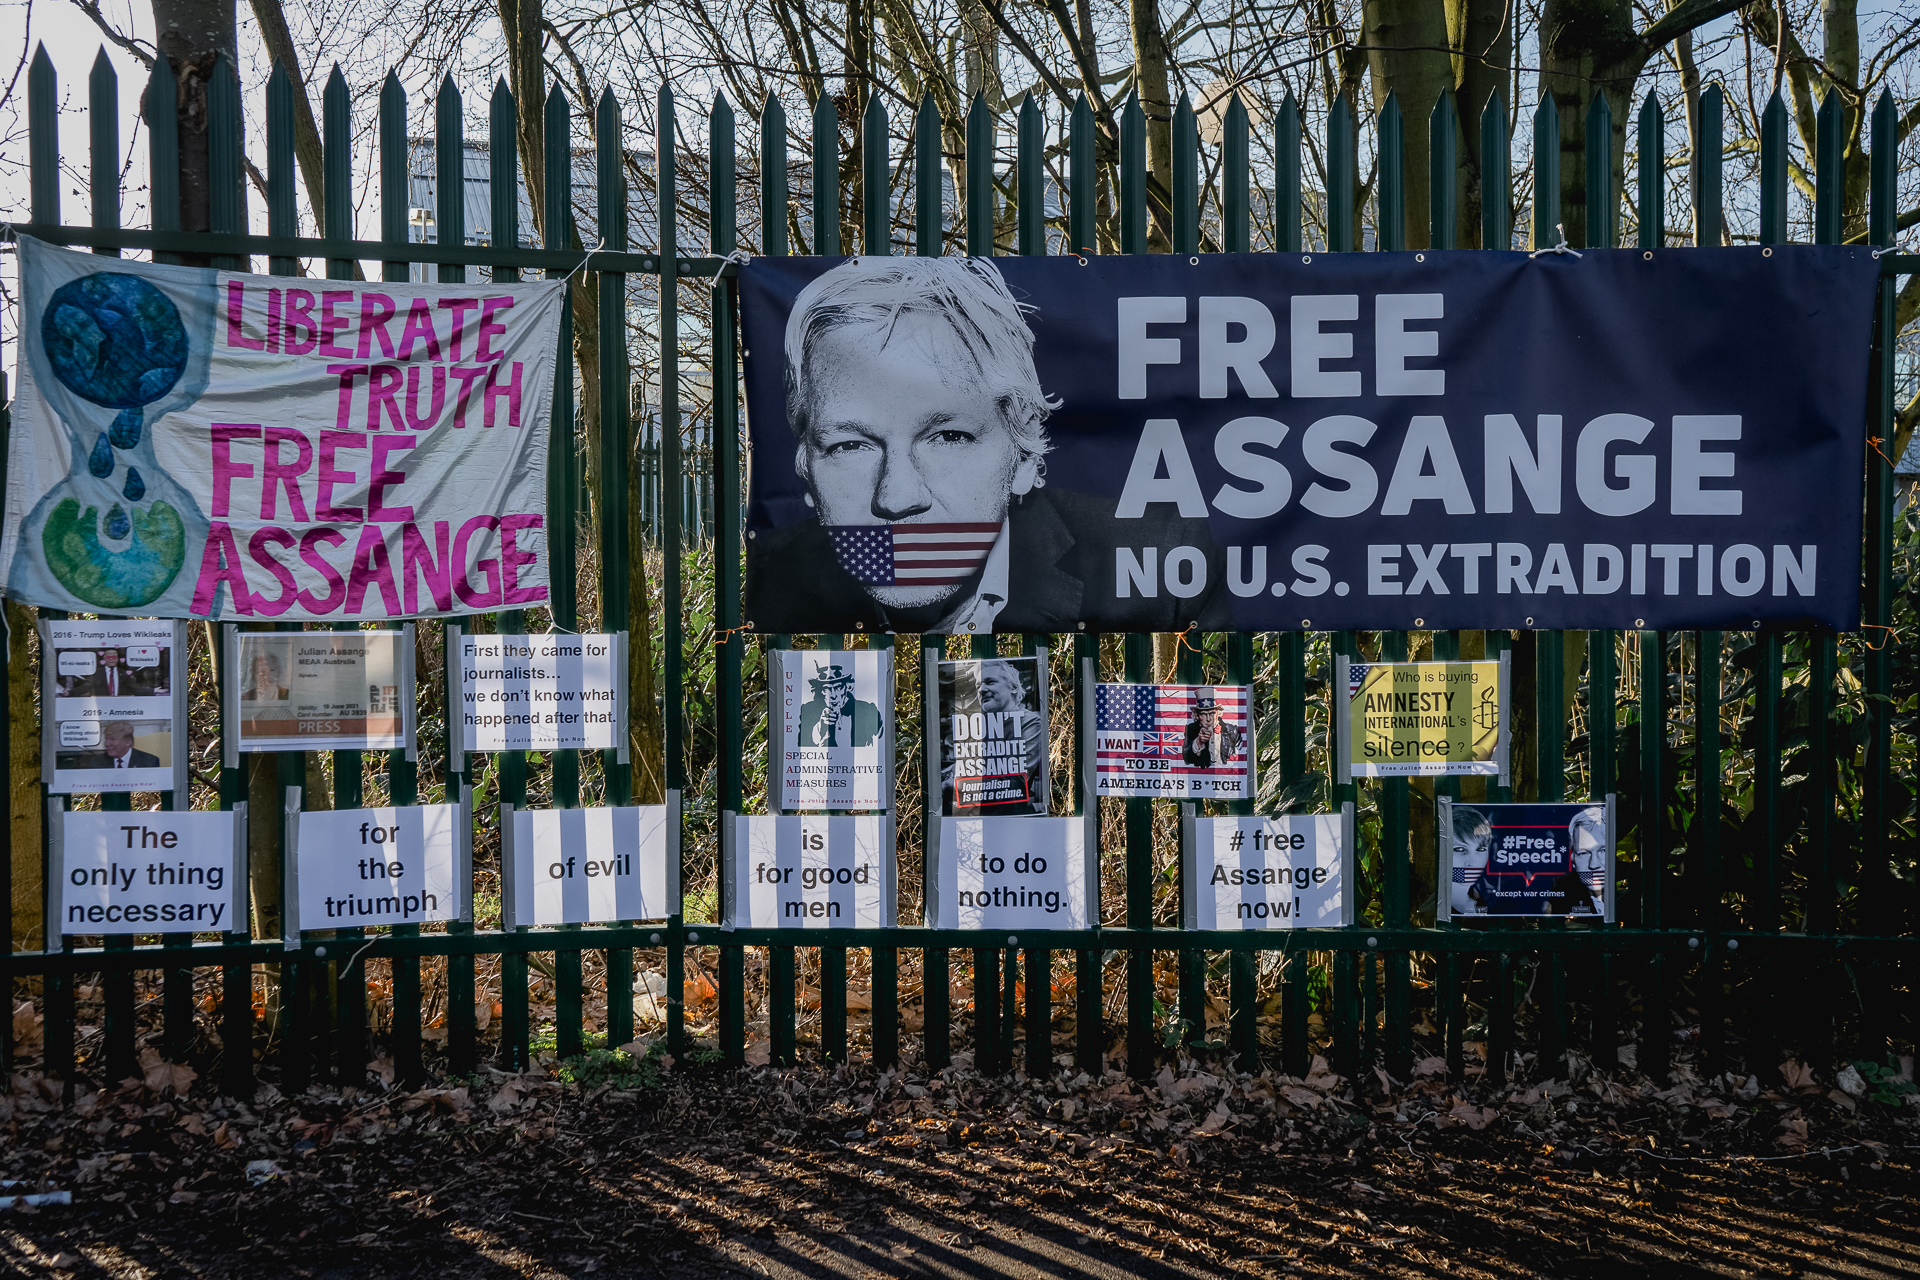 Assange Court Report Day 3: Afternoon